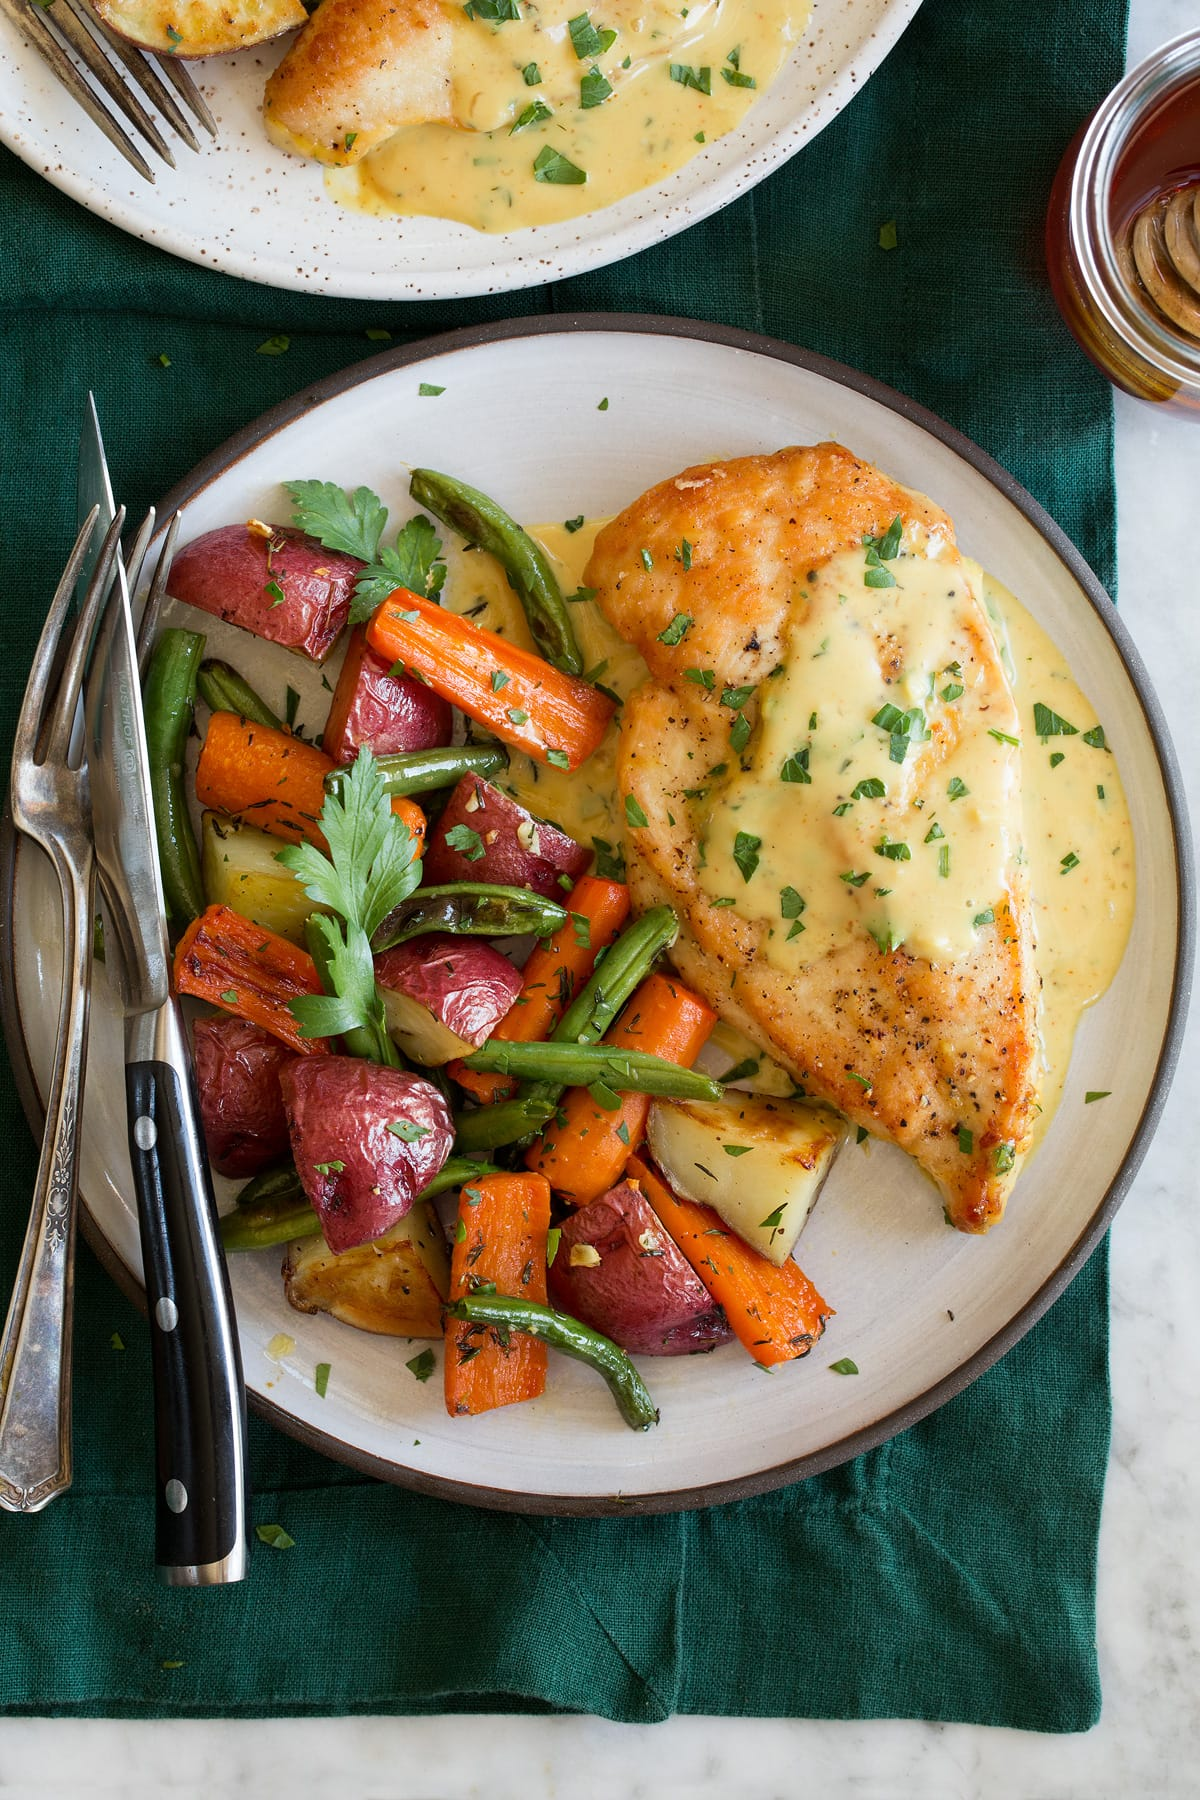 Honey mustard chicken shown with a serving suggestion of roasted vegetables on a serving plate.